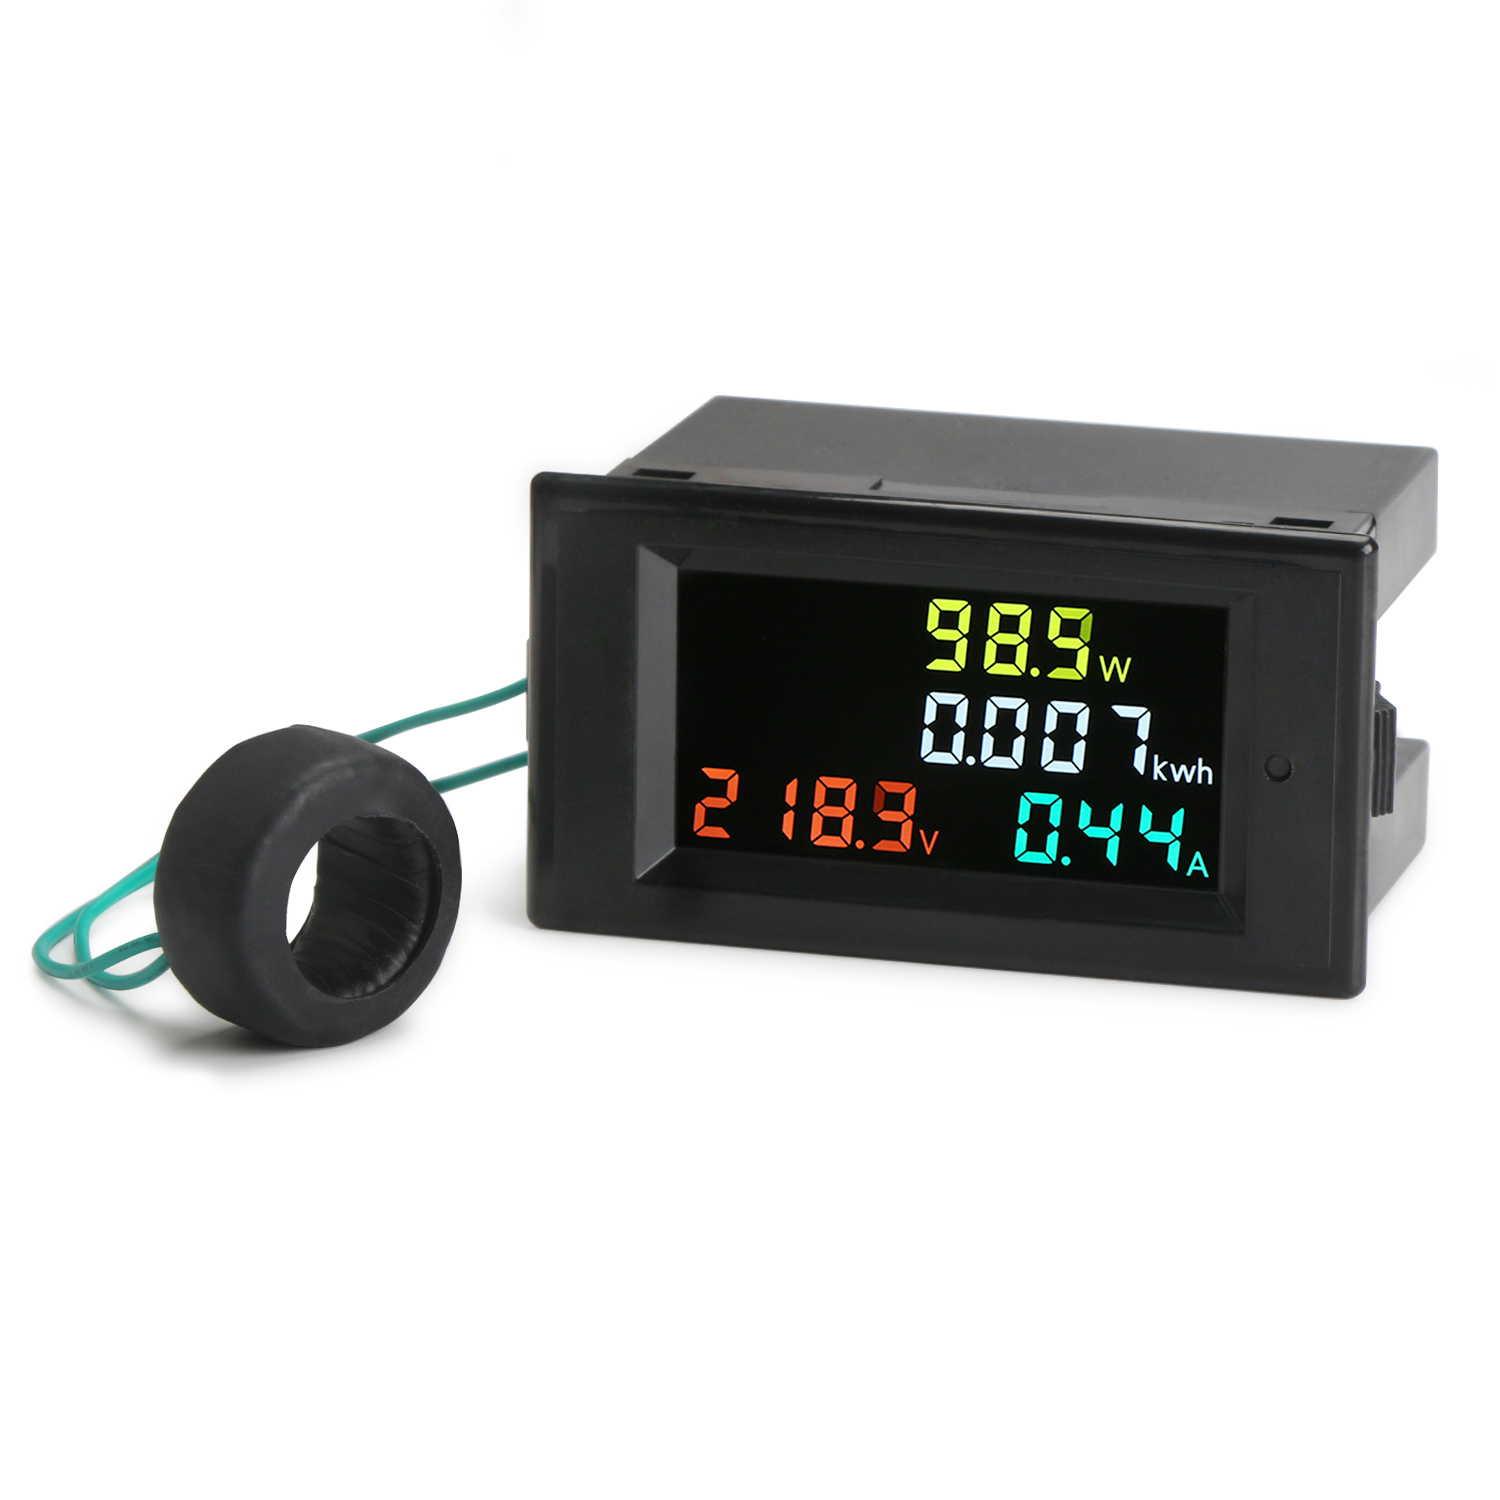 Digital Tester 4in1 Ac Voltmeter Ammeter Power Meter Energy Load Is Large The Use Of Current Transformer Multifunction Monitor Panel Multimeter